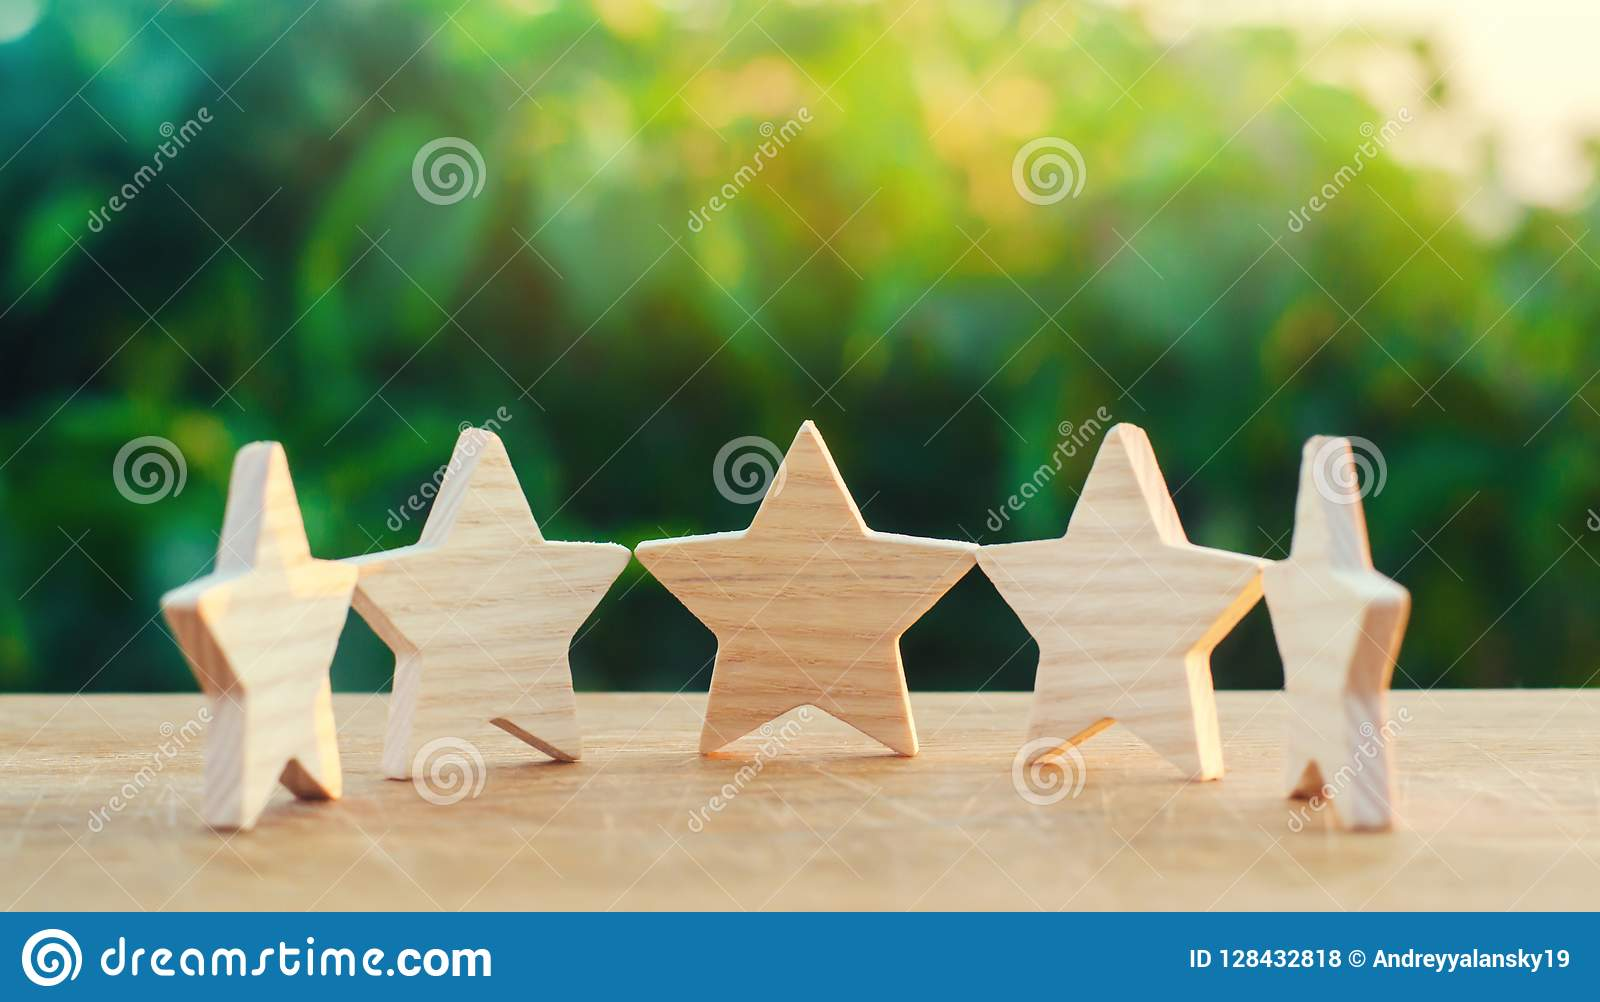 Five wooden stars. Get the fifth star. The concept of the rating of hotels and restaurants, the evaluation of critics and visitors